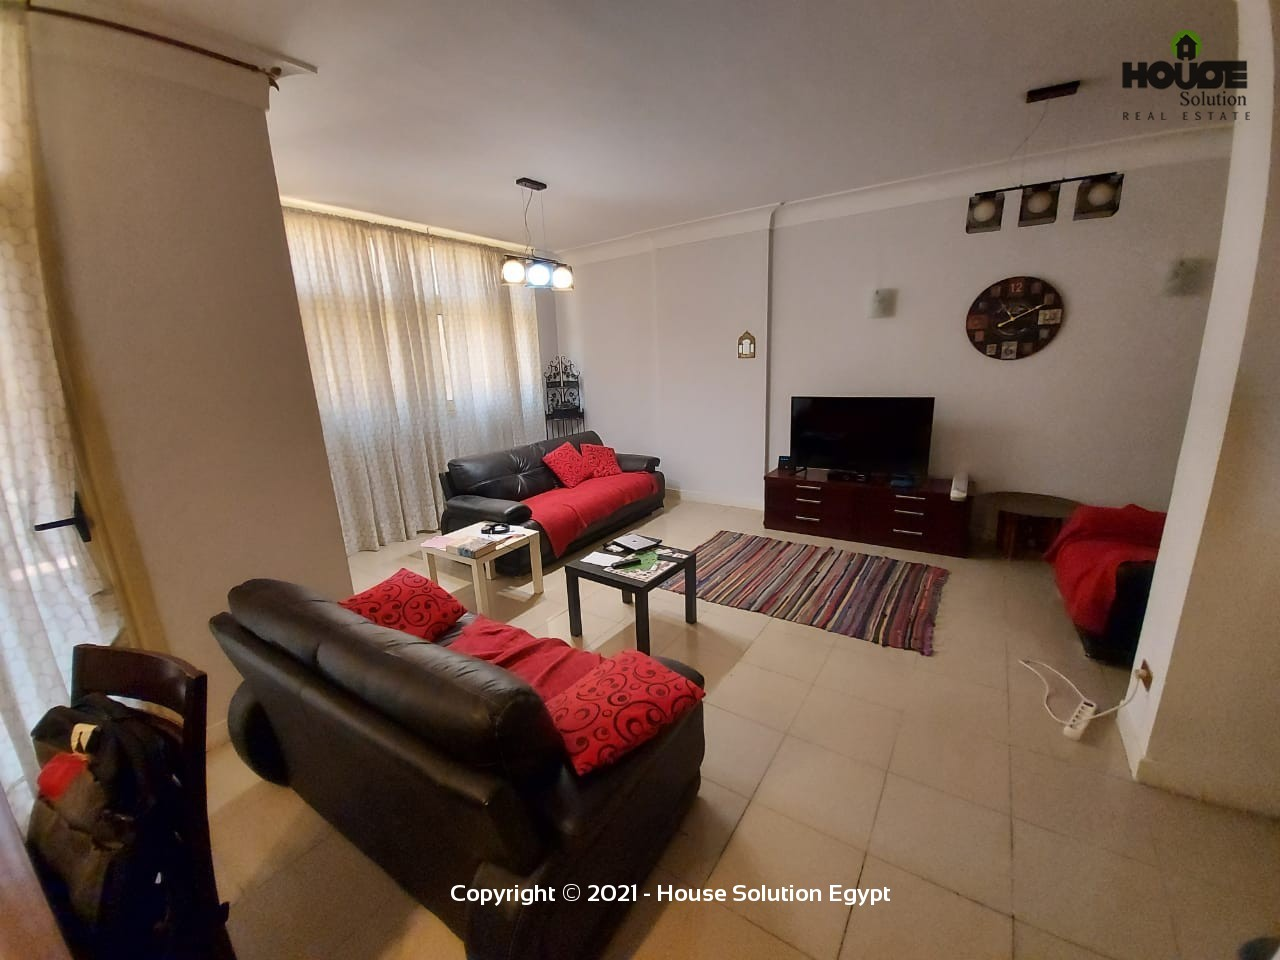 Clean Modern Furnished Apartment For Rent In Degla El Maadi Next To Cairo American College (C.a.c) - 4958 Featured Image